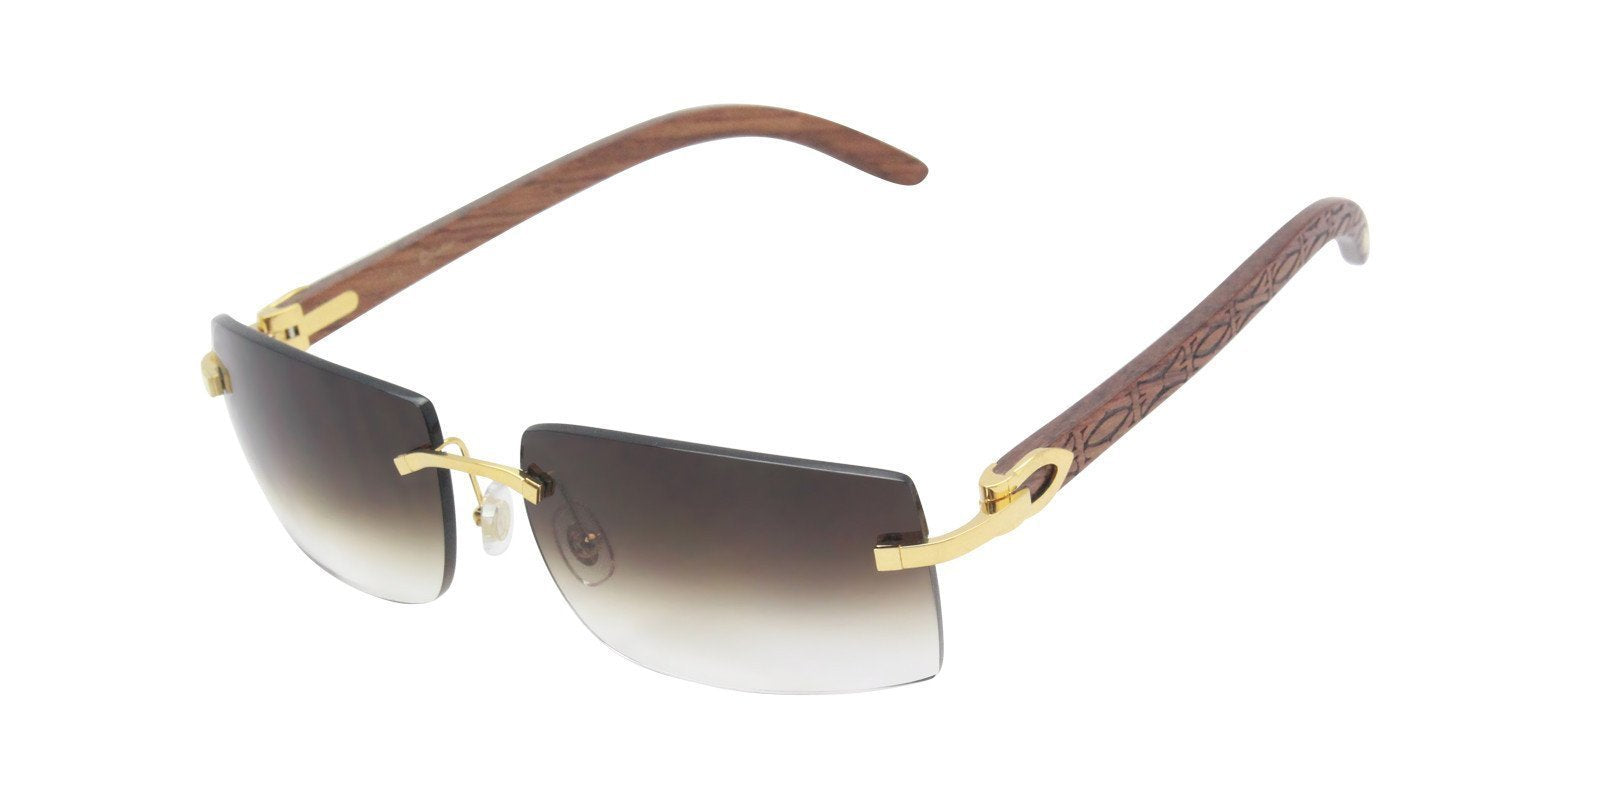 Cartier - C Decor Gold Rimless Unisex Sunglasses - 56mm-Sunglasses-Designer Eyes